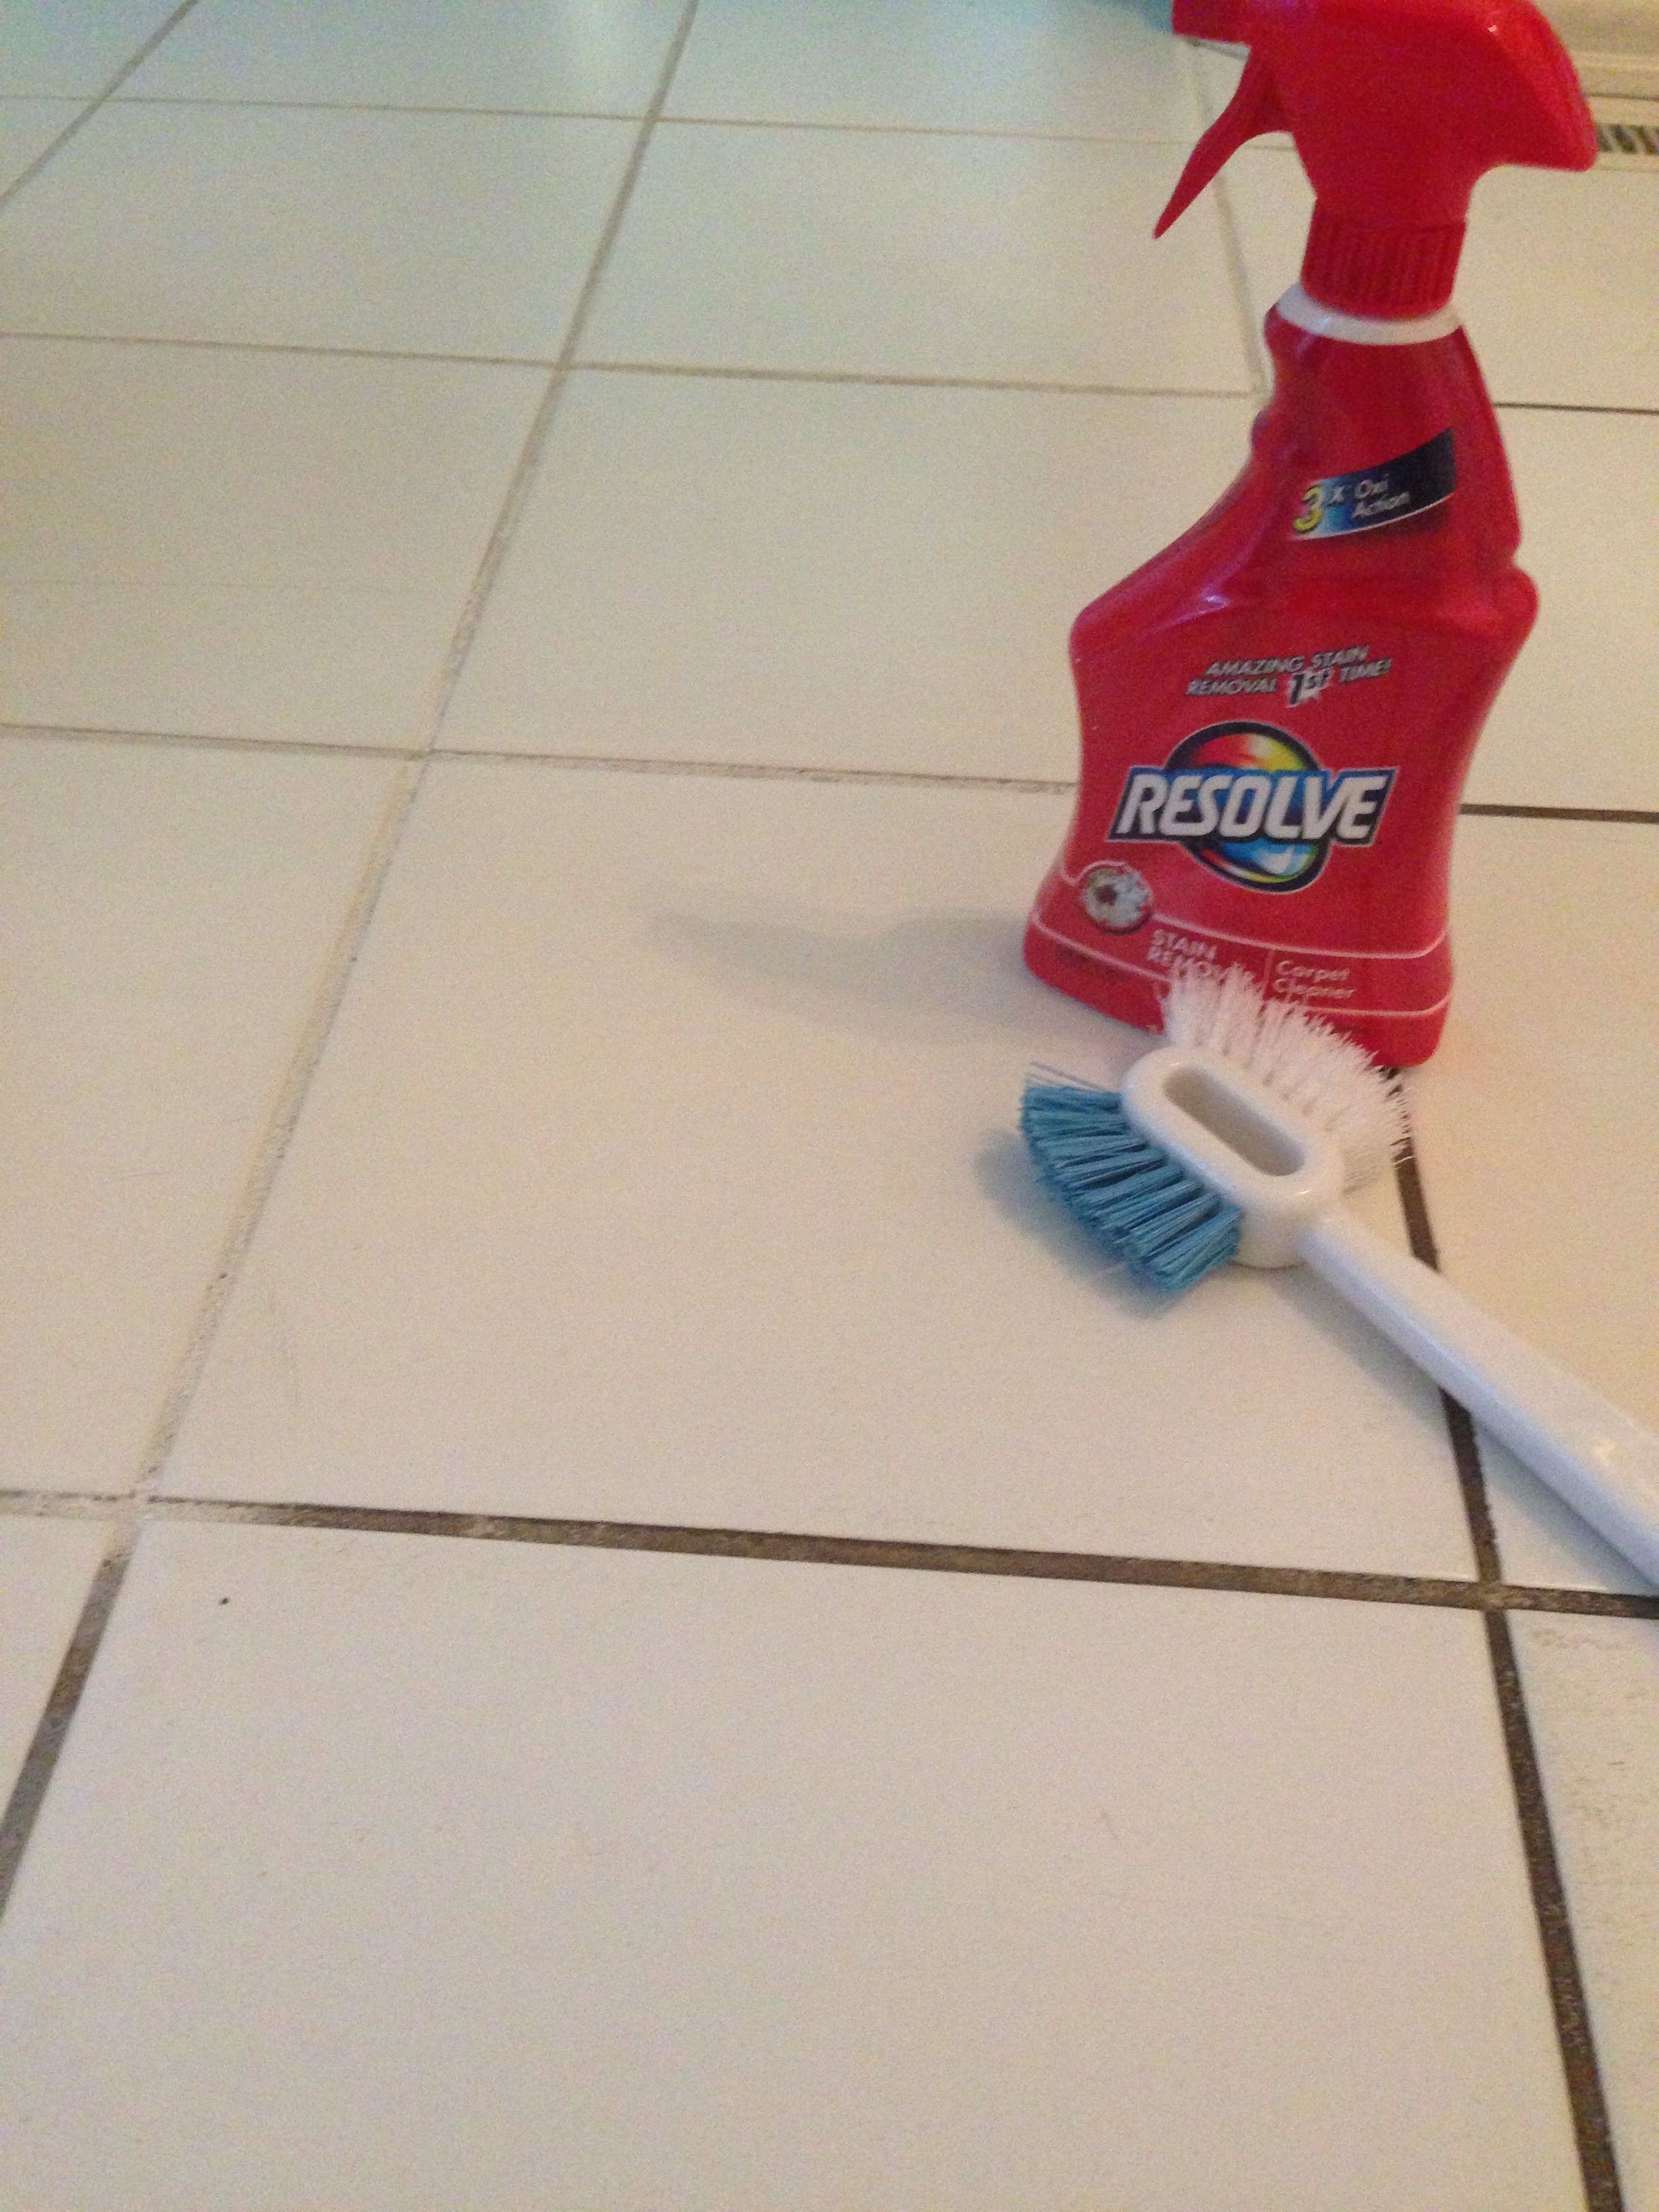 Resolve carpet cleaner to clean grout | Hydrogen peroxide, Grout and ...